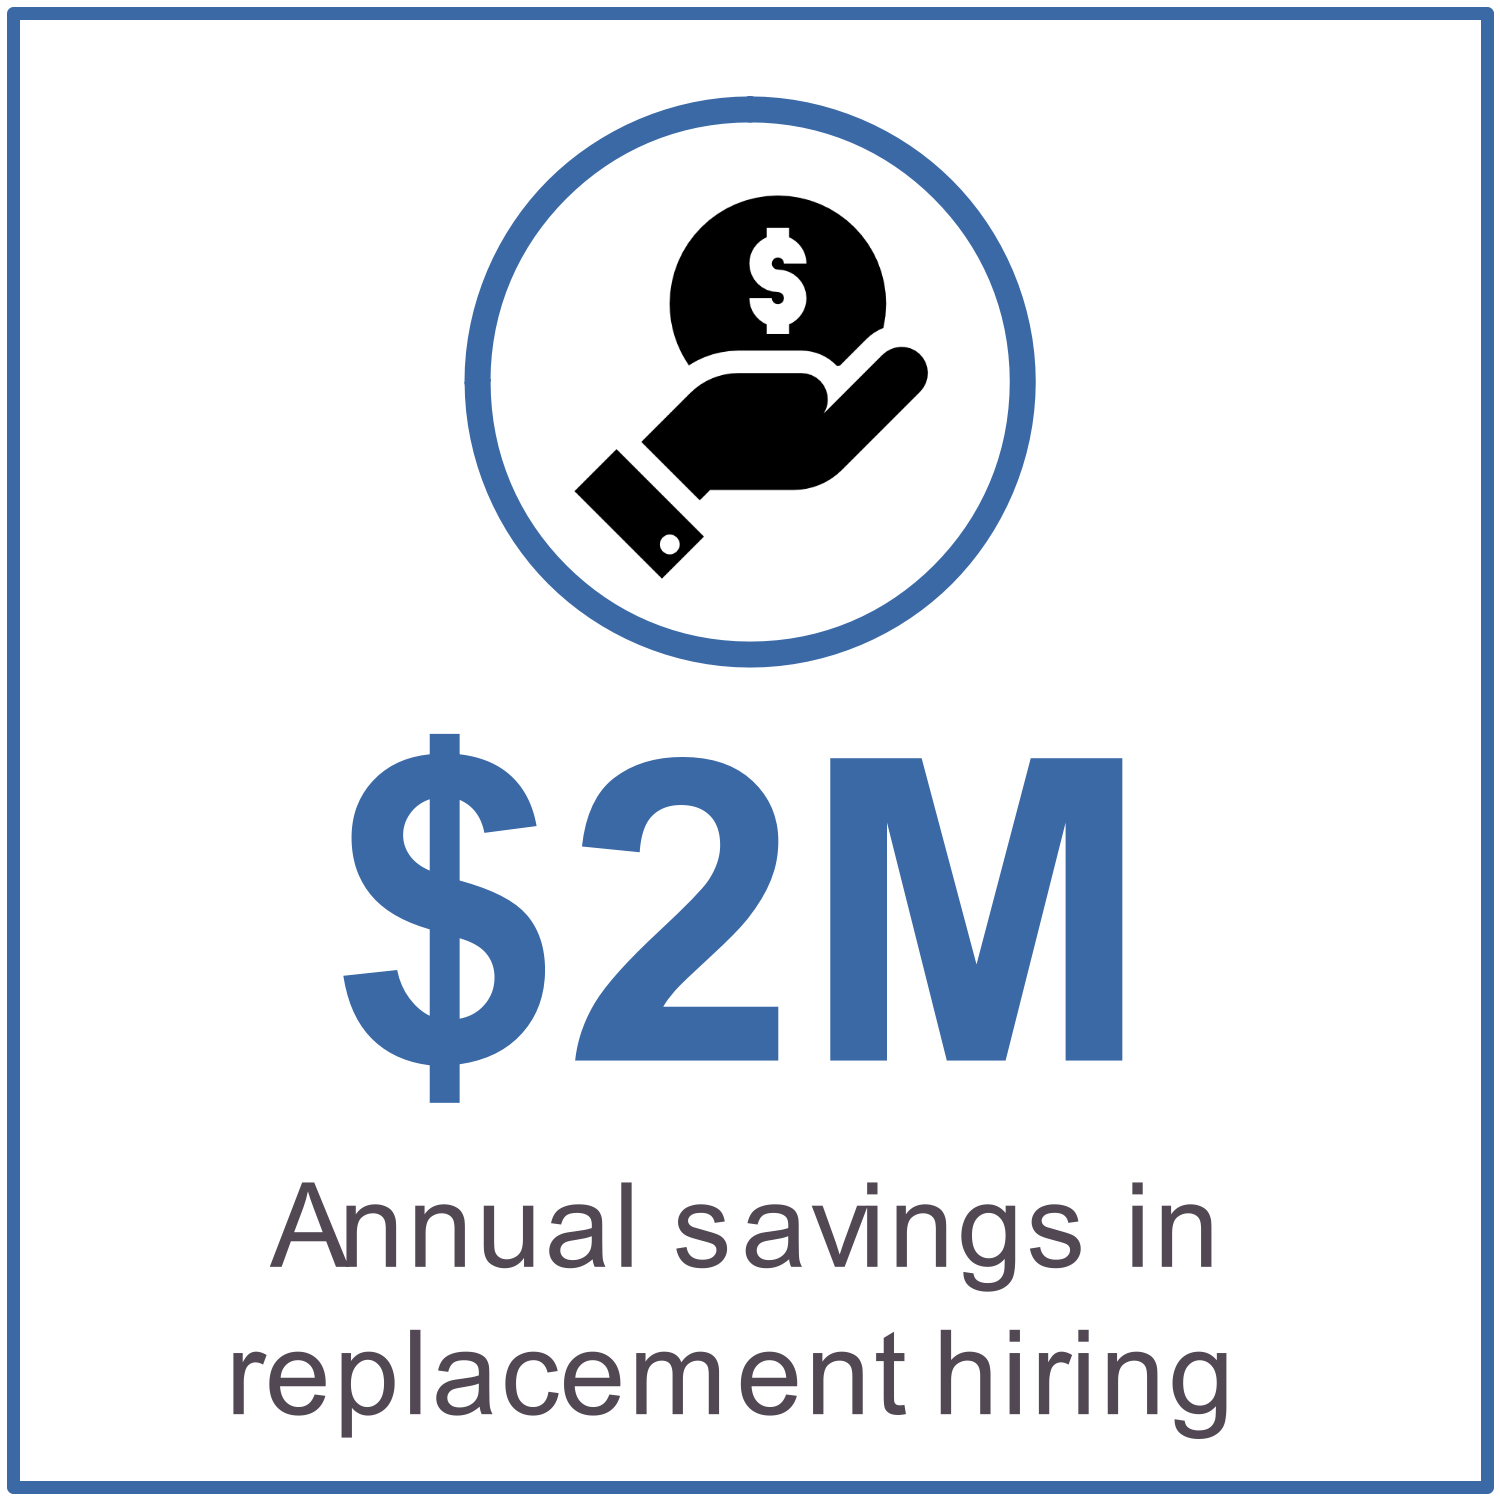 $2M annual savings in replacement hiring